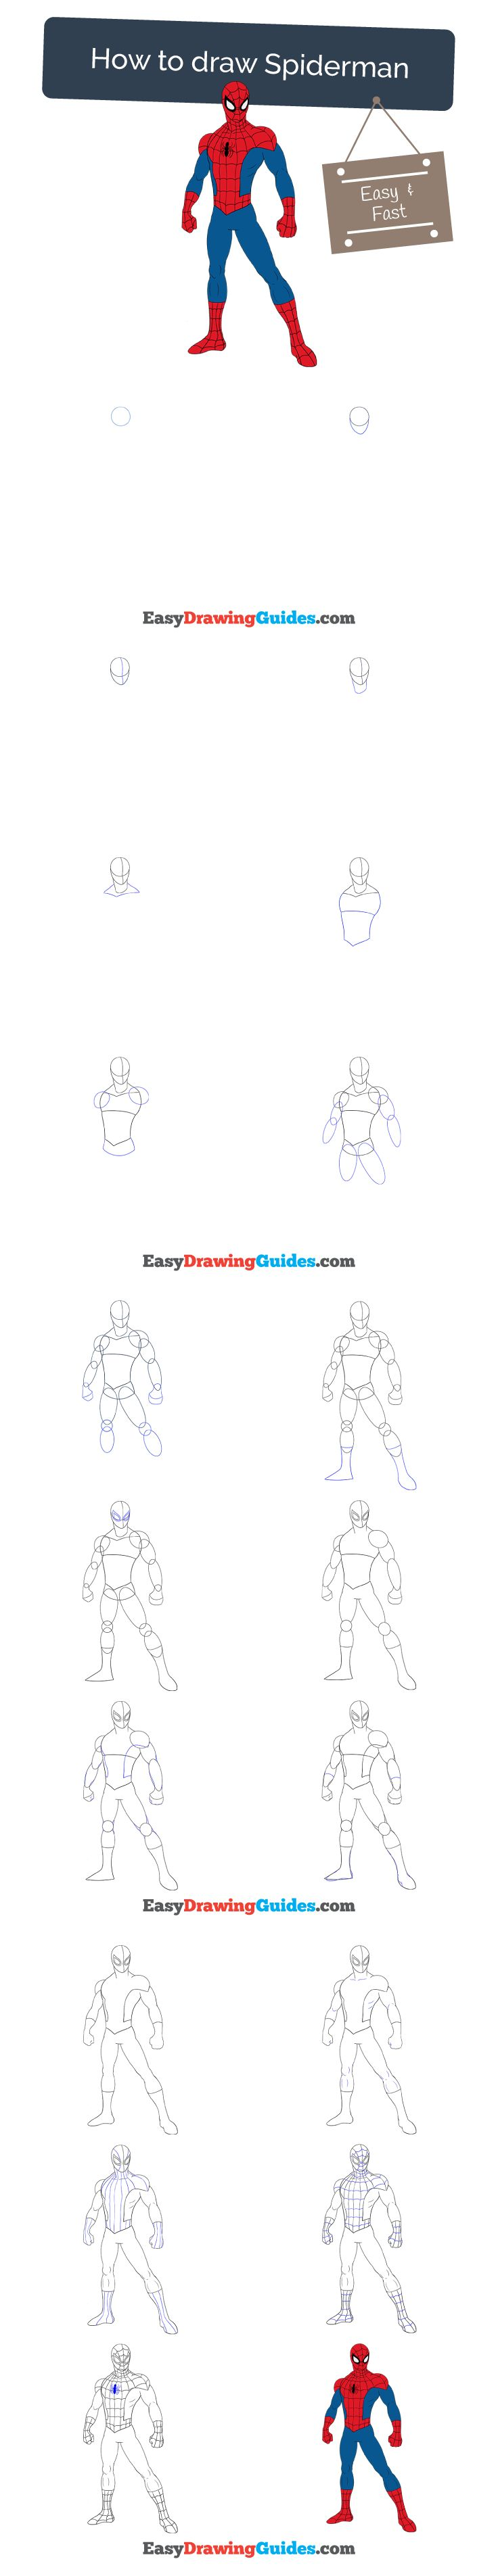 Learn How to Draw Spiderman: Easy Step-by-Step Drawing Tutorial for Kids and Beginners. #spiderman #drawing. See the full tutorial at https://easydrawingguides.com/how-to-draw-spiderman/